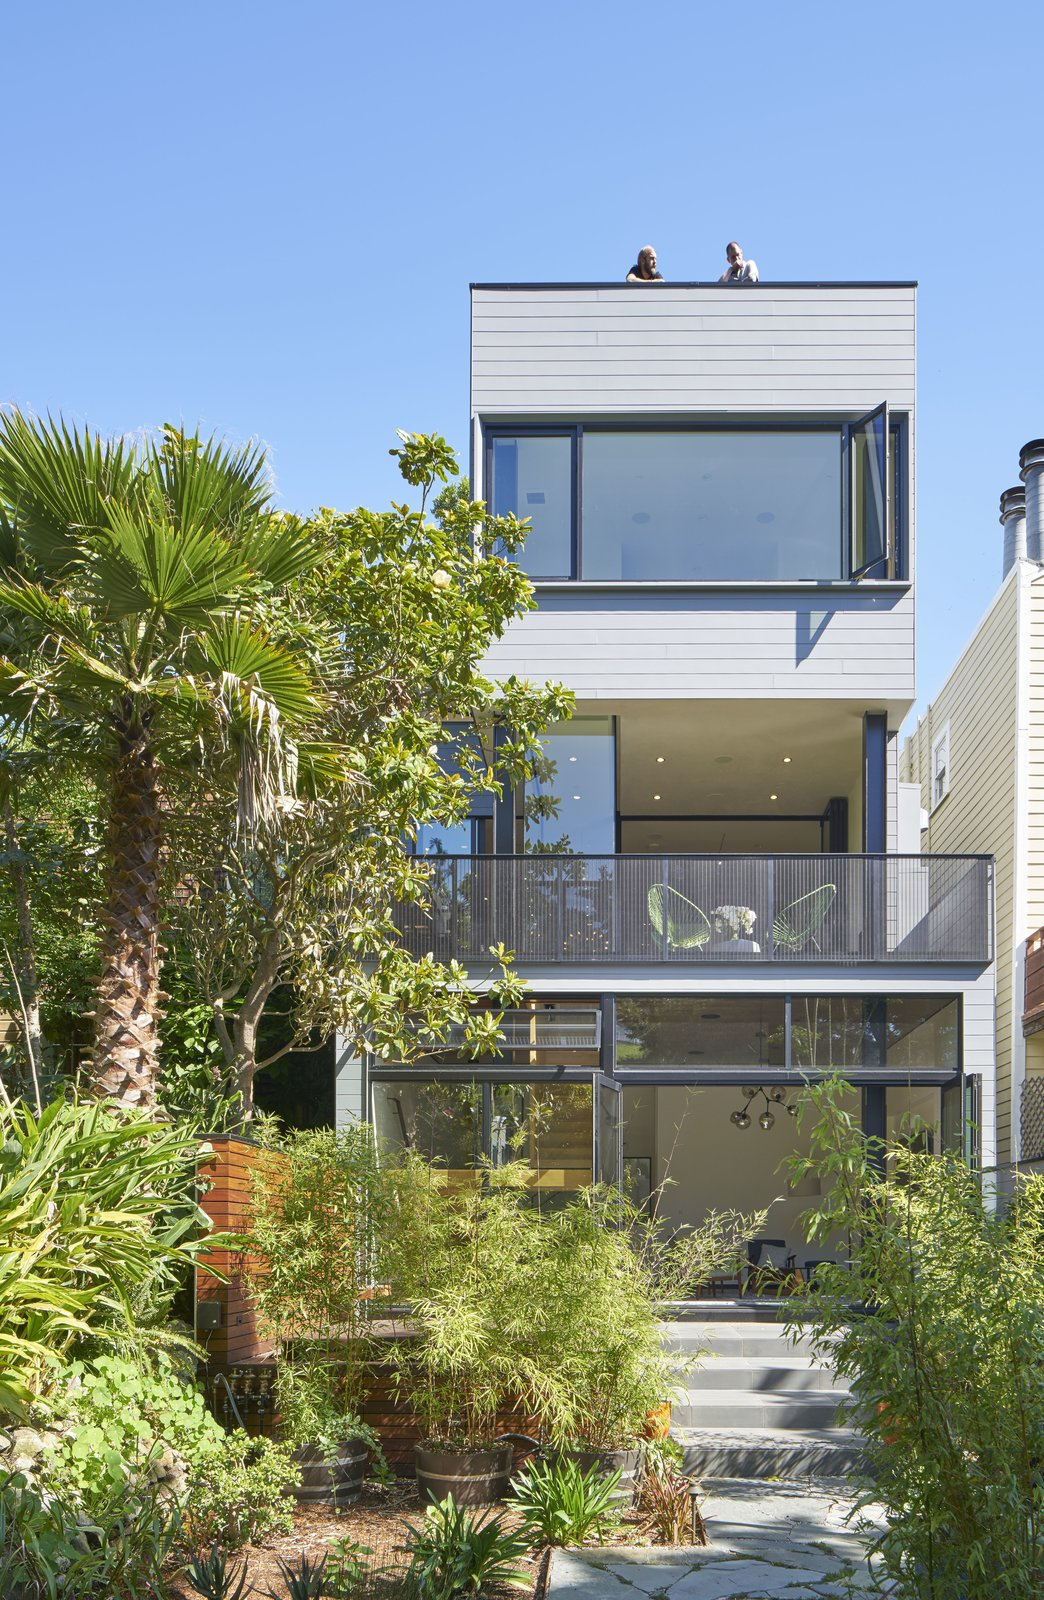 Tagged: Outdoor, Shrubs, Trees, Raised Planters, and Small Patio, Porch, Deck.  29th Street Residence by Schwartz and Architecture